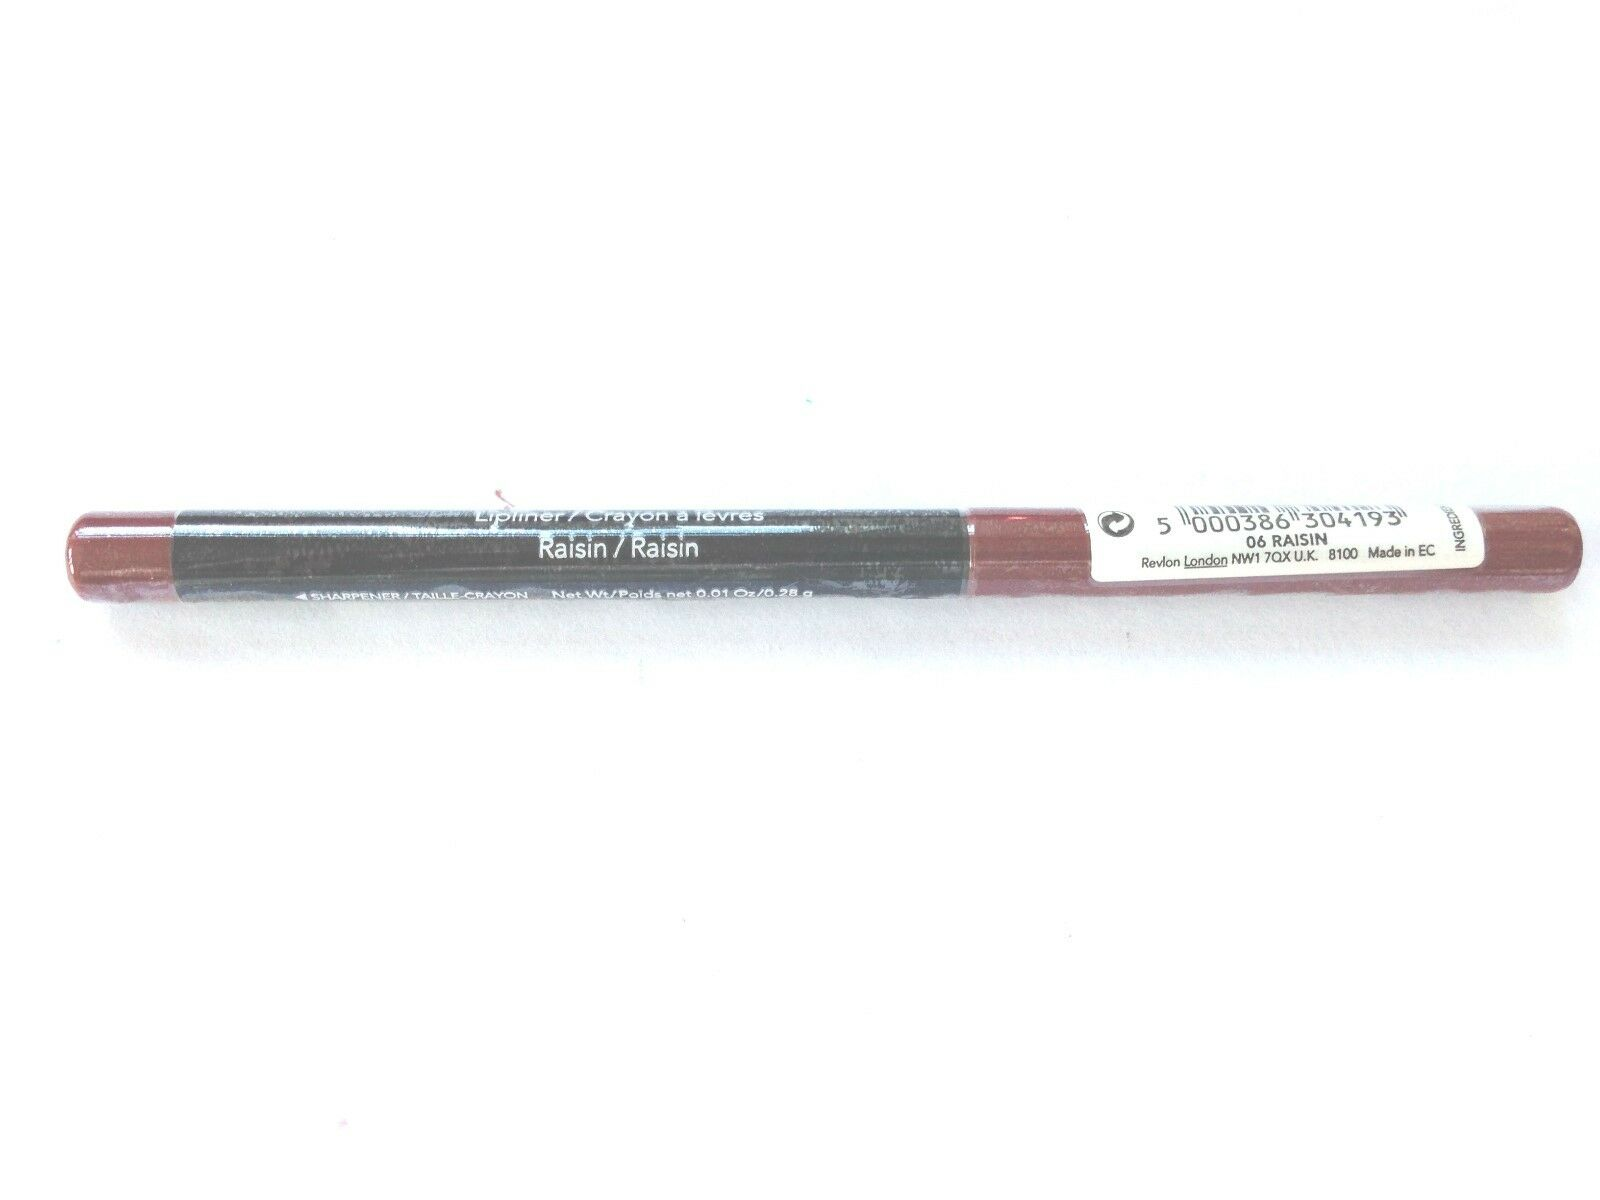 Revlon Colorstay Retractable Twist Up Lip Liner Pencil Raisi